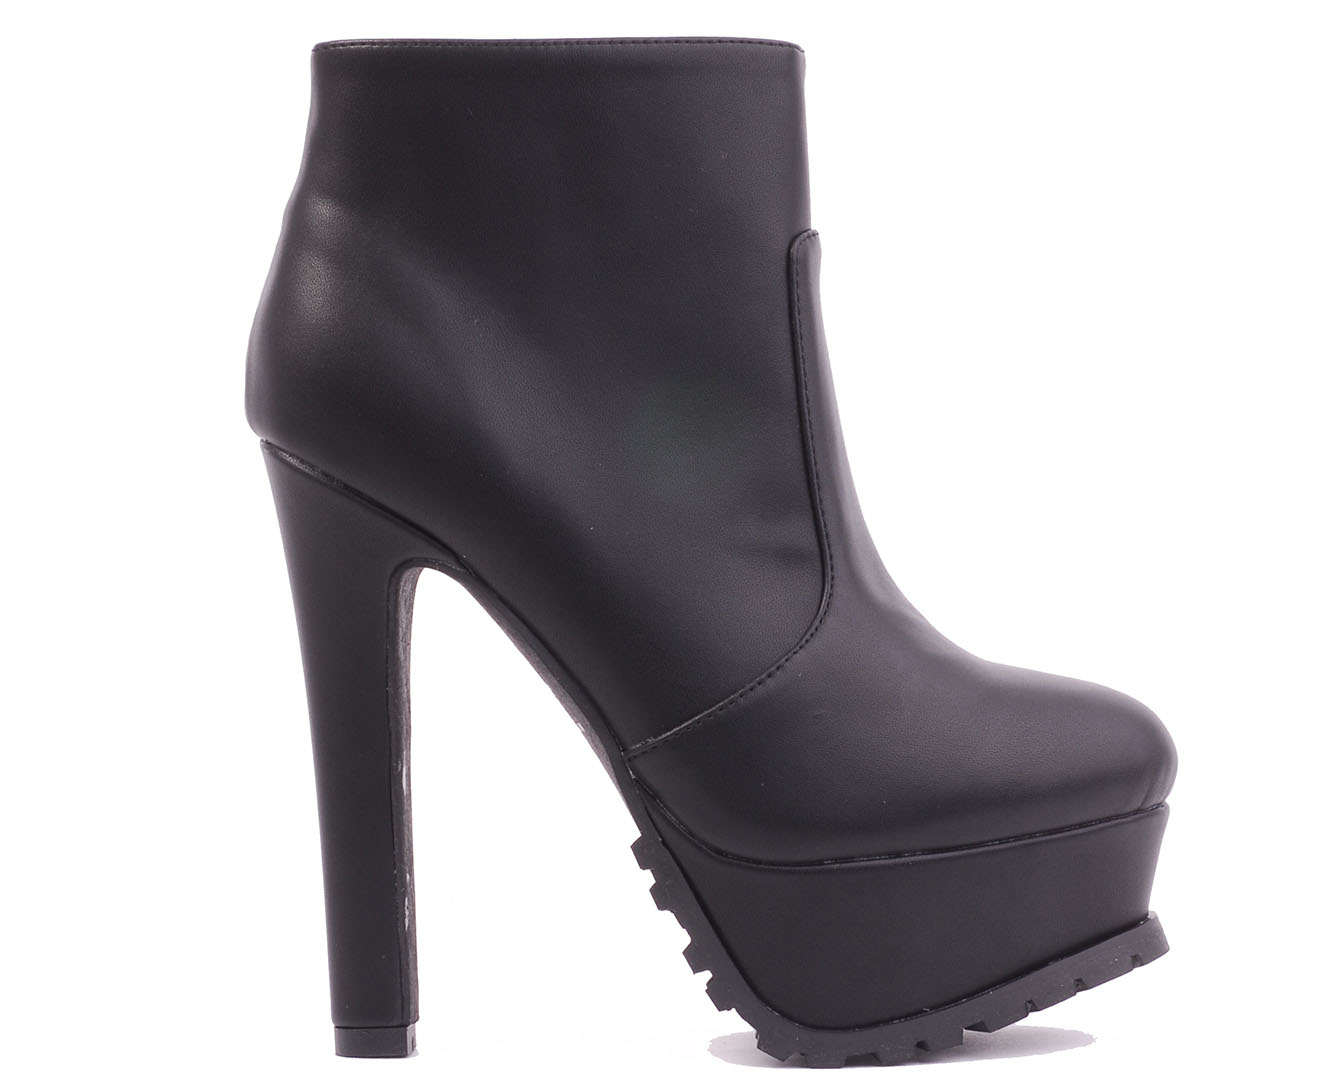 Verali Lorraine Ankle Boot - Black Smooth